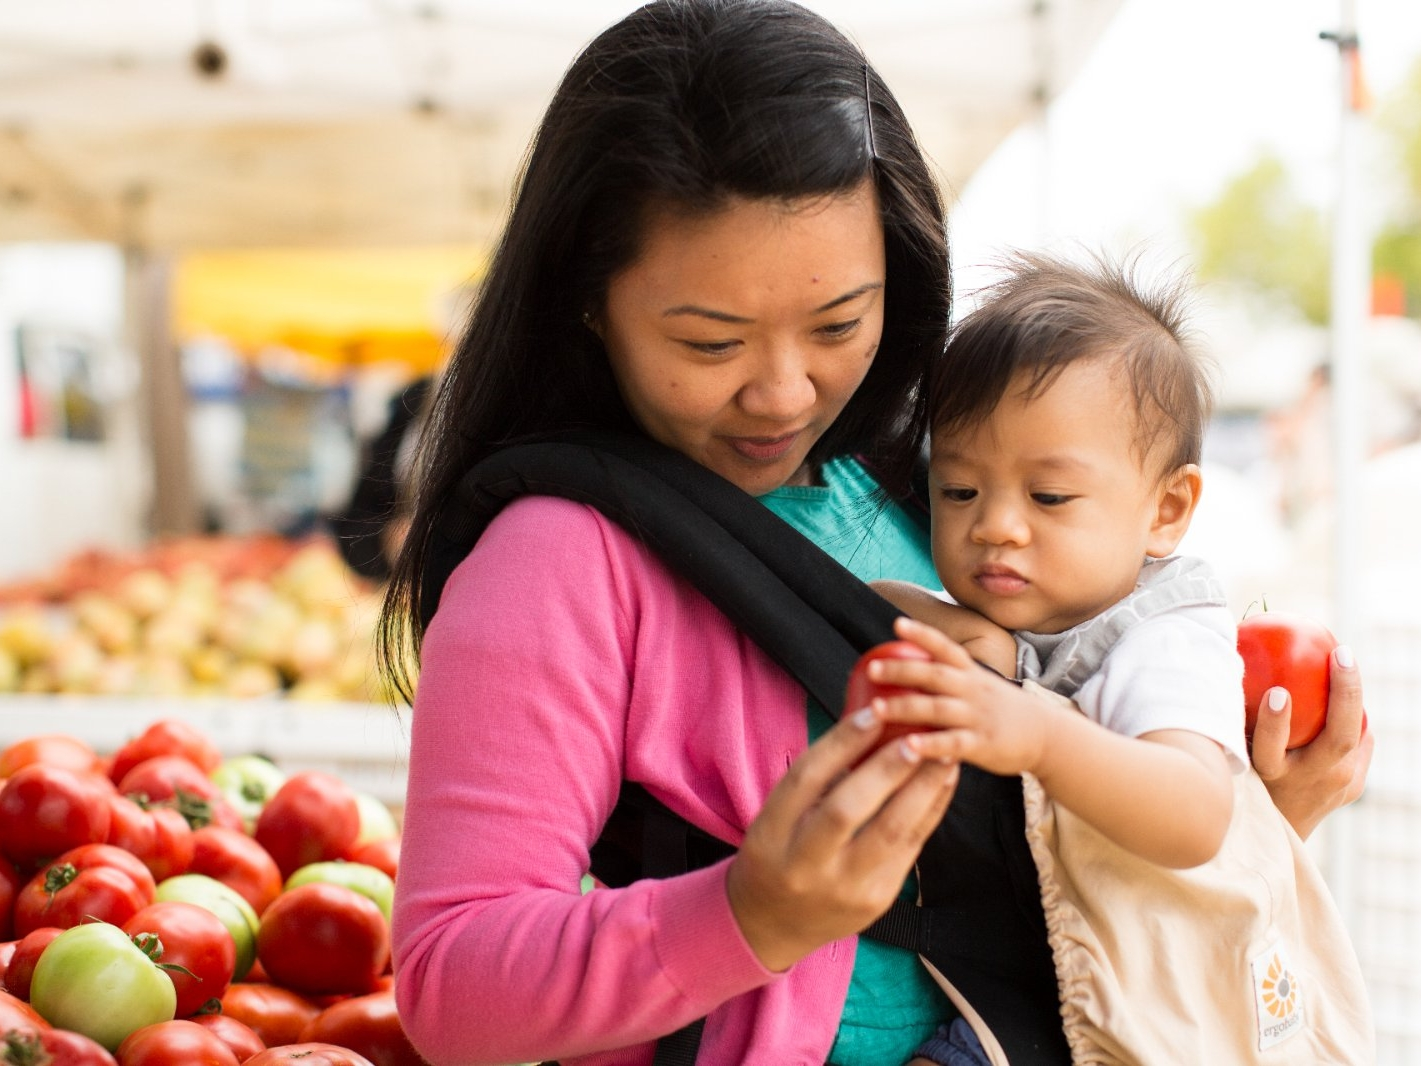 A woman and her baby at a farmers' market.